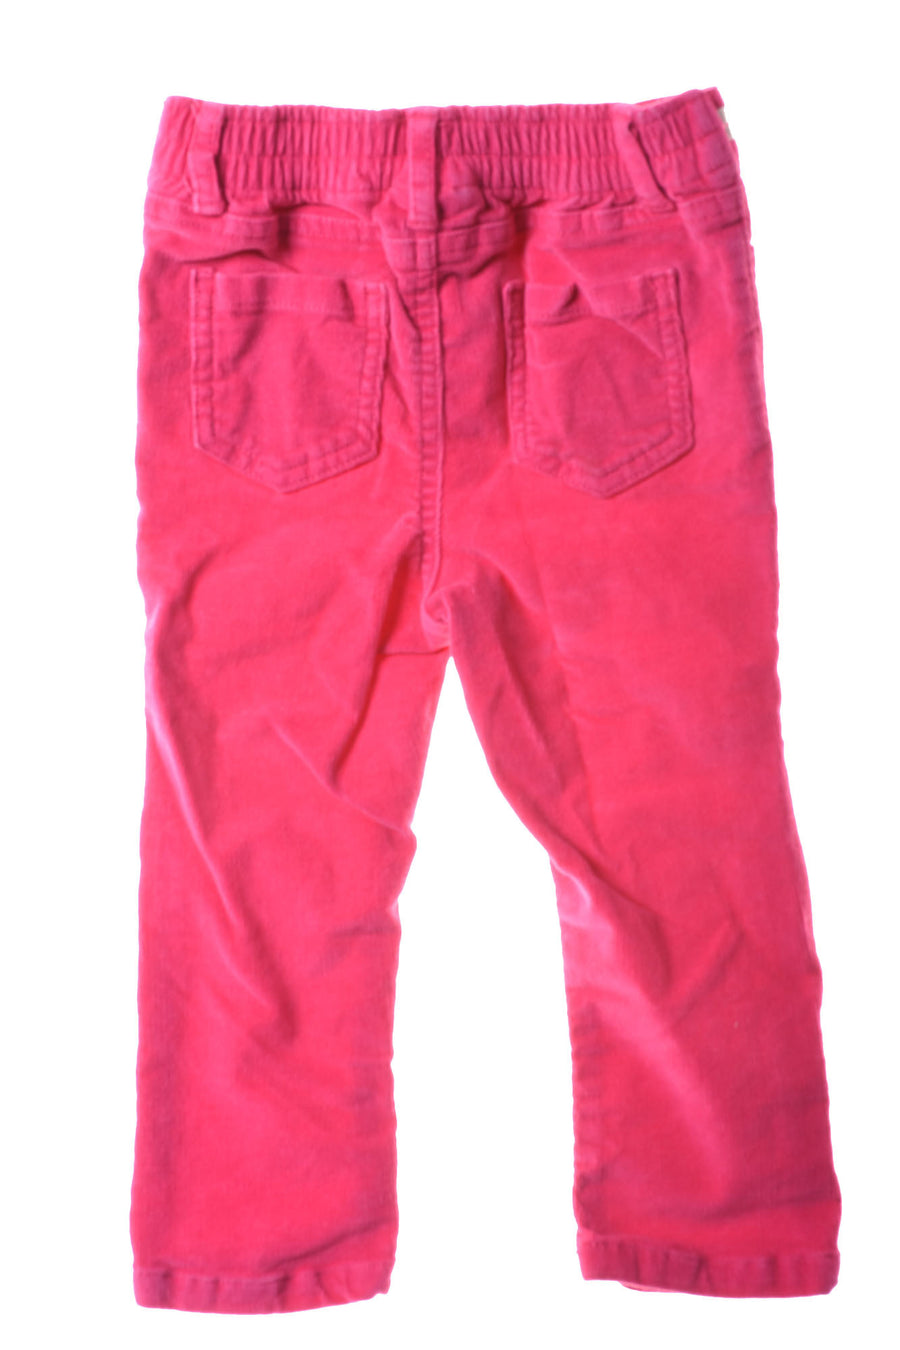 USED Oshkosh Toddler Girl's Pants 24 Months Pink